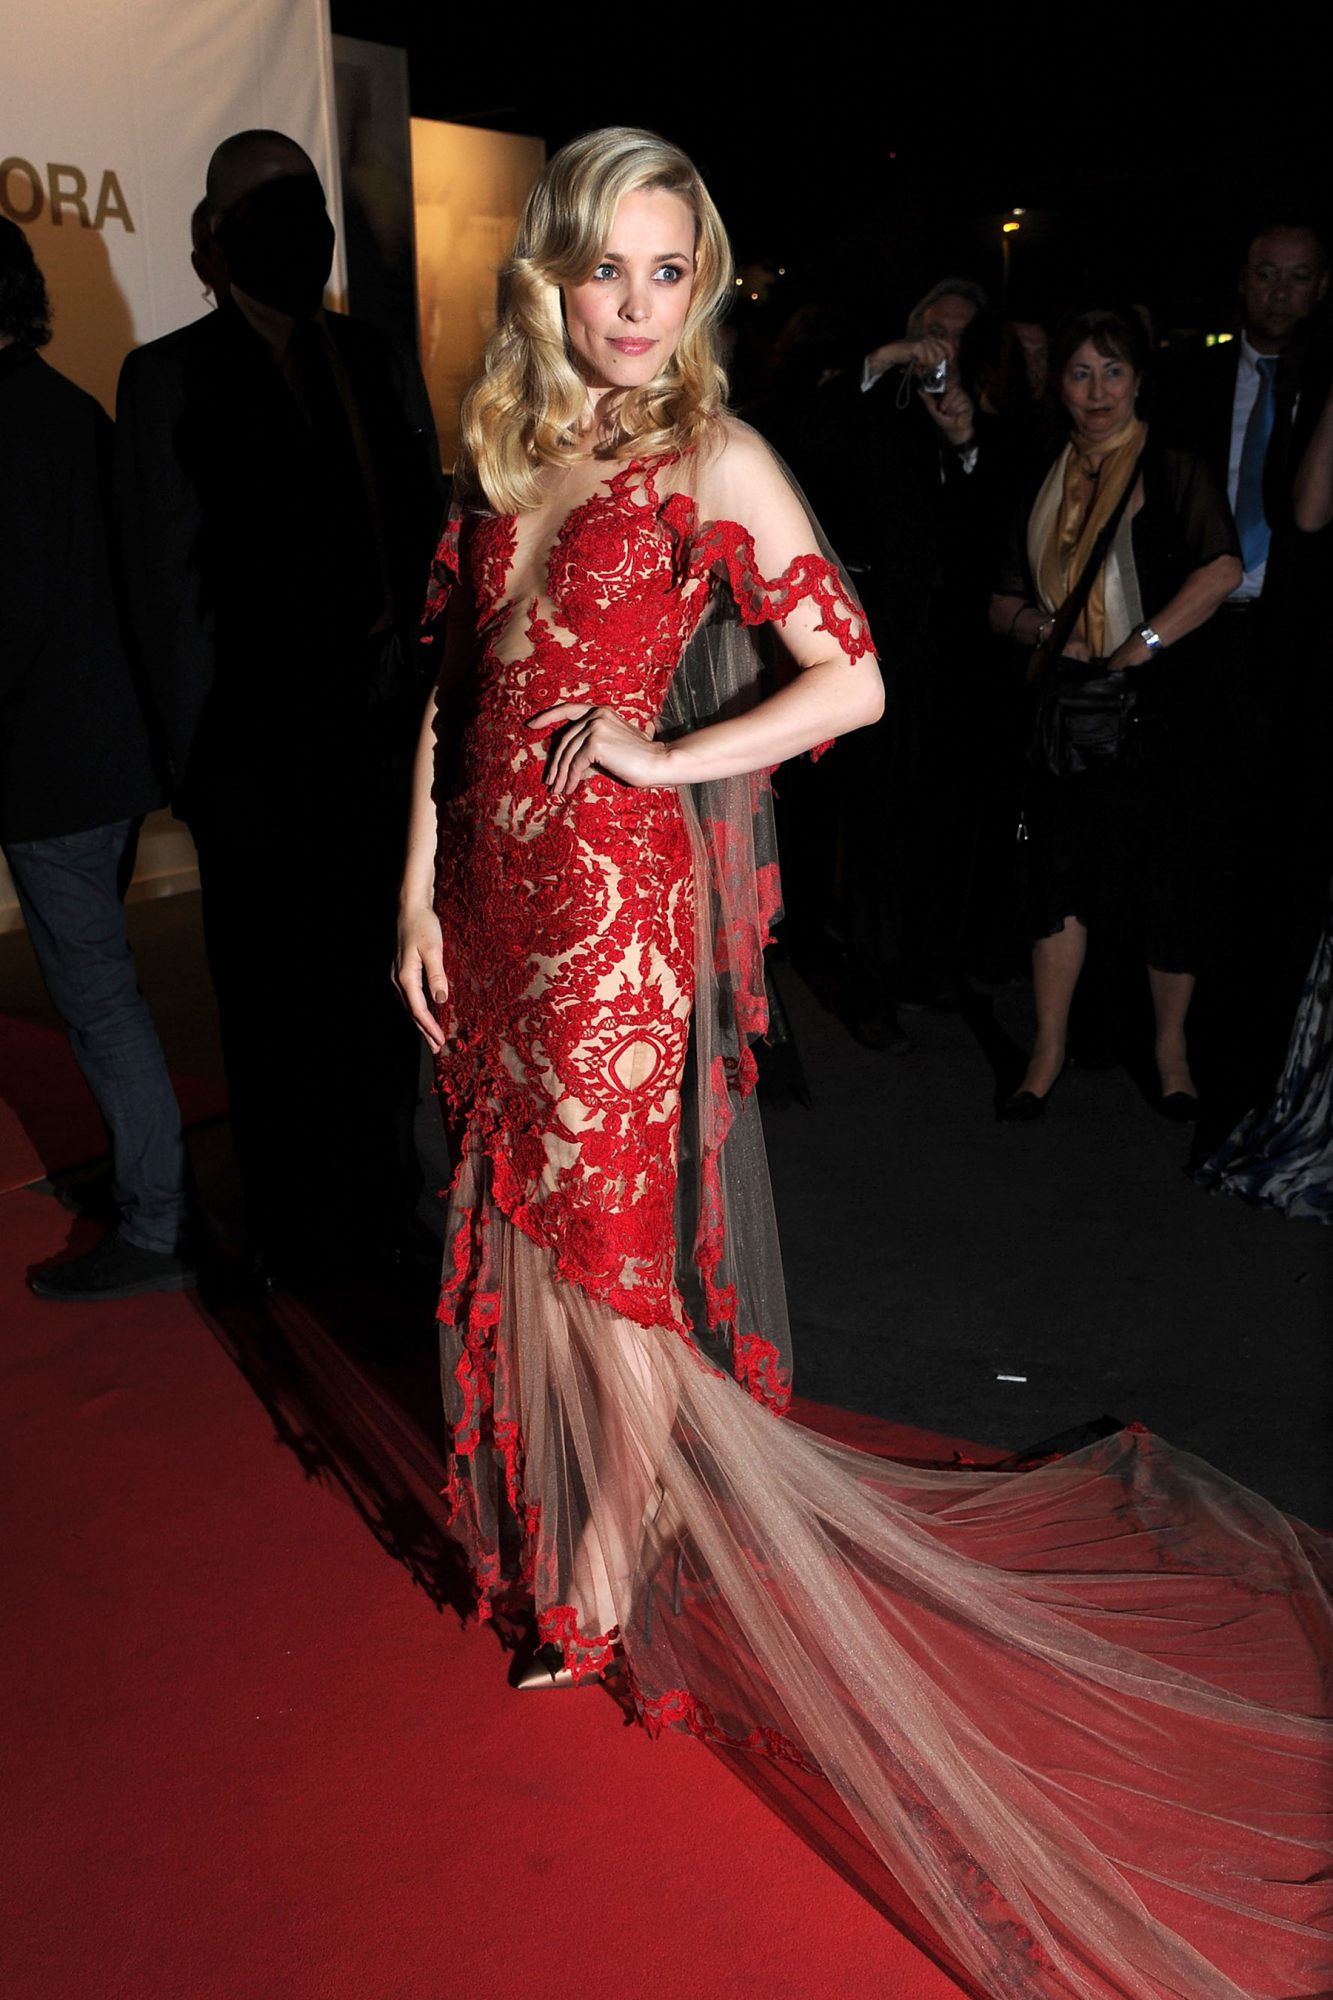 64th Annual Cannes Film Festival - Opening Night Dinner